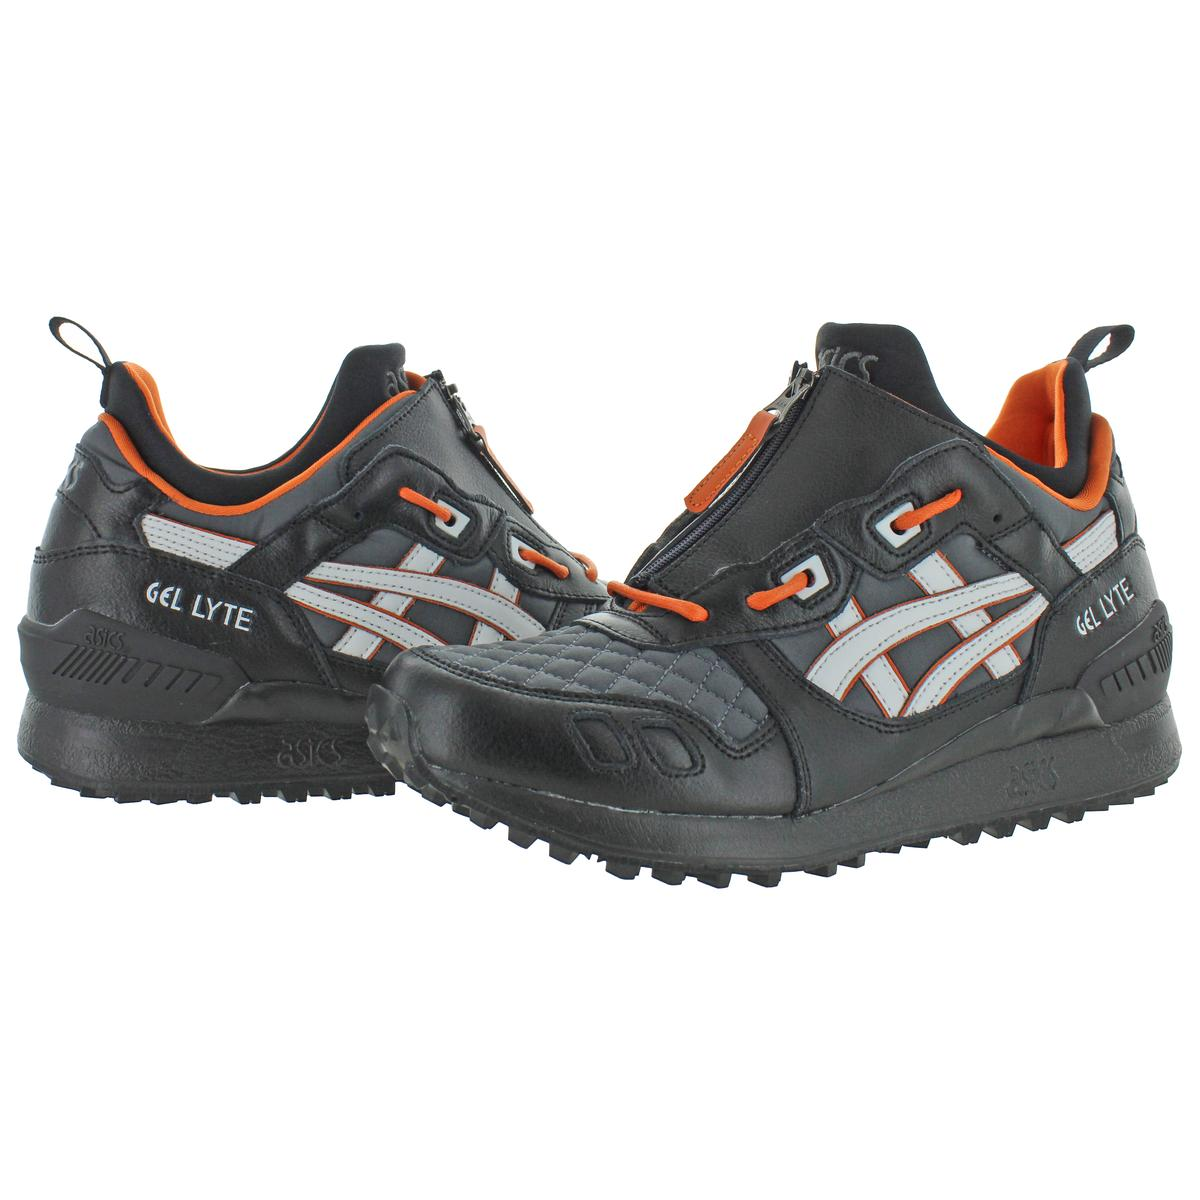 thumbnail 3 - ASICS-Tiger-Mens-Gel-Lyte-MT-Leather-Lace-Up-Mid-Top-Sneakers-Shoes-BHFO-5834